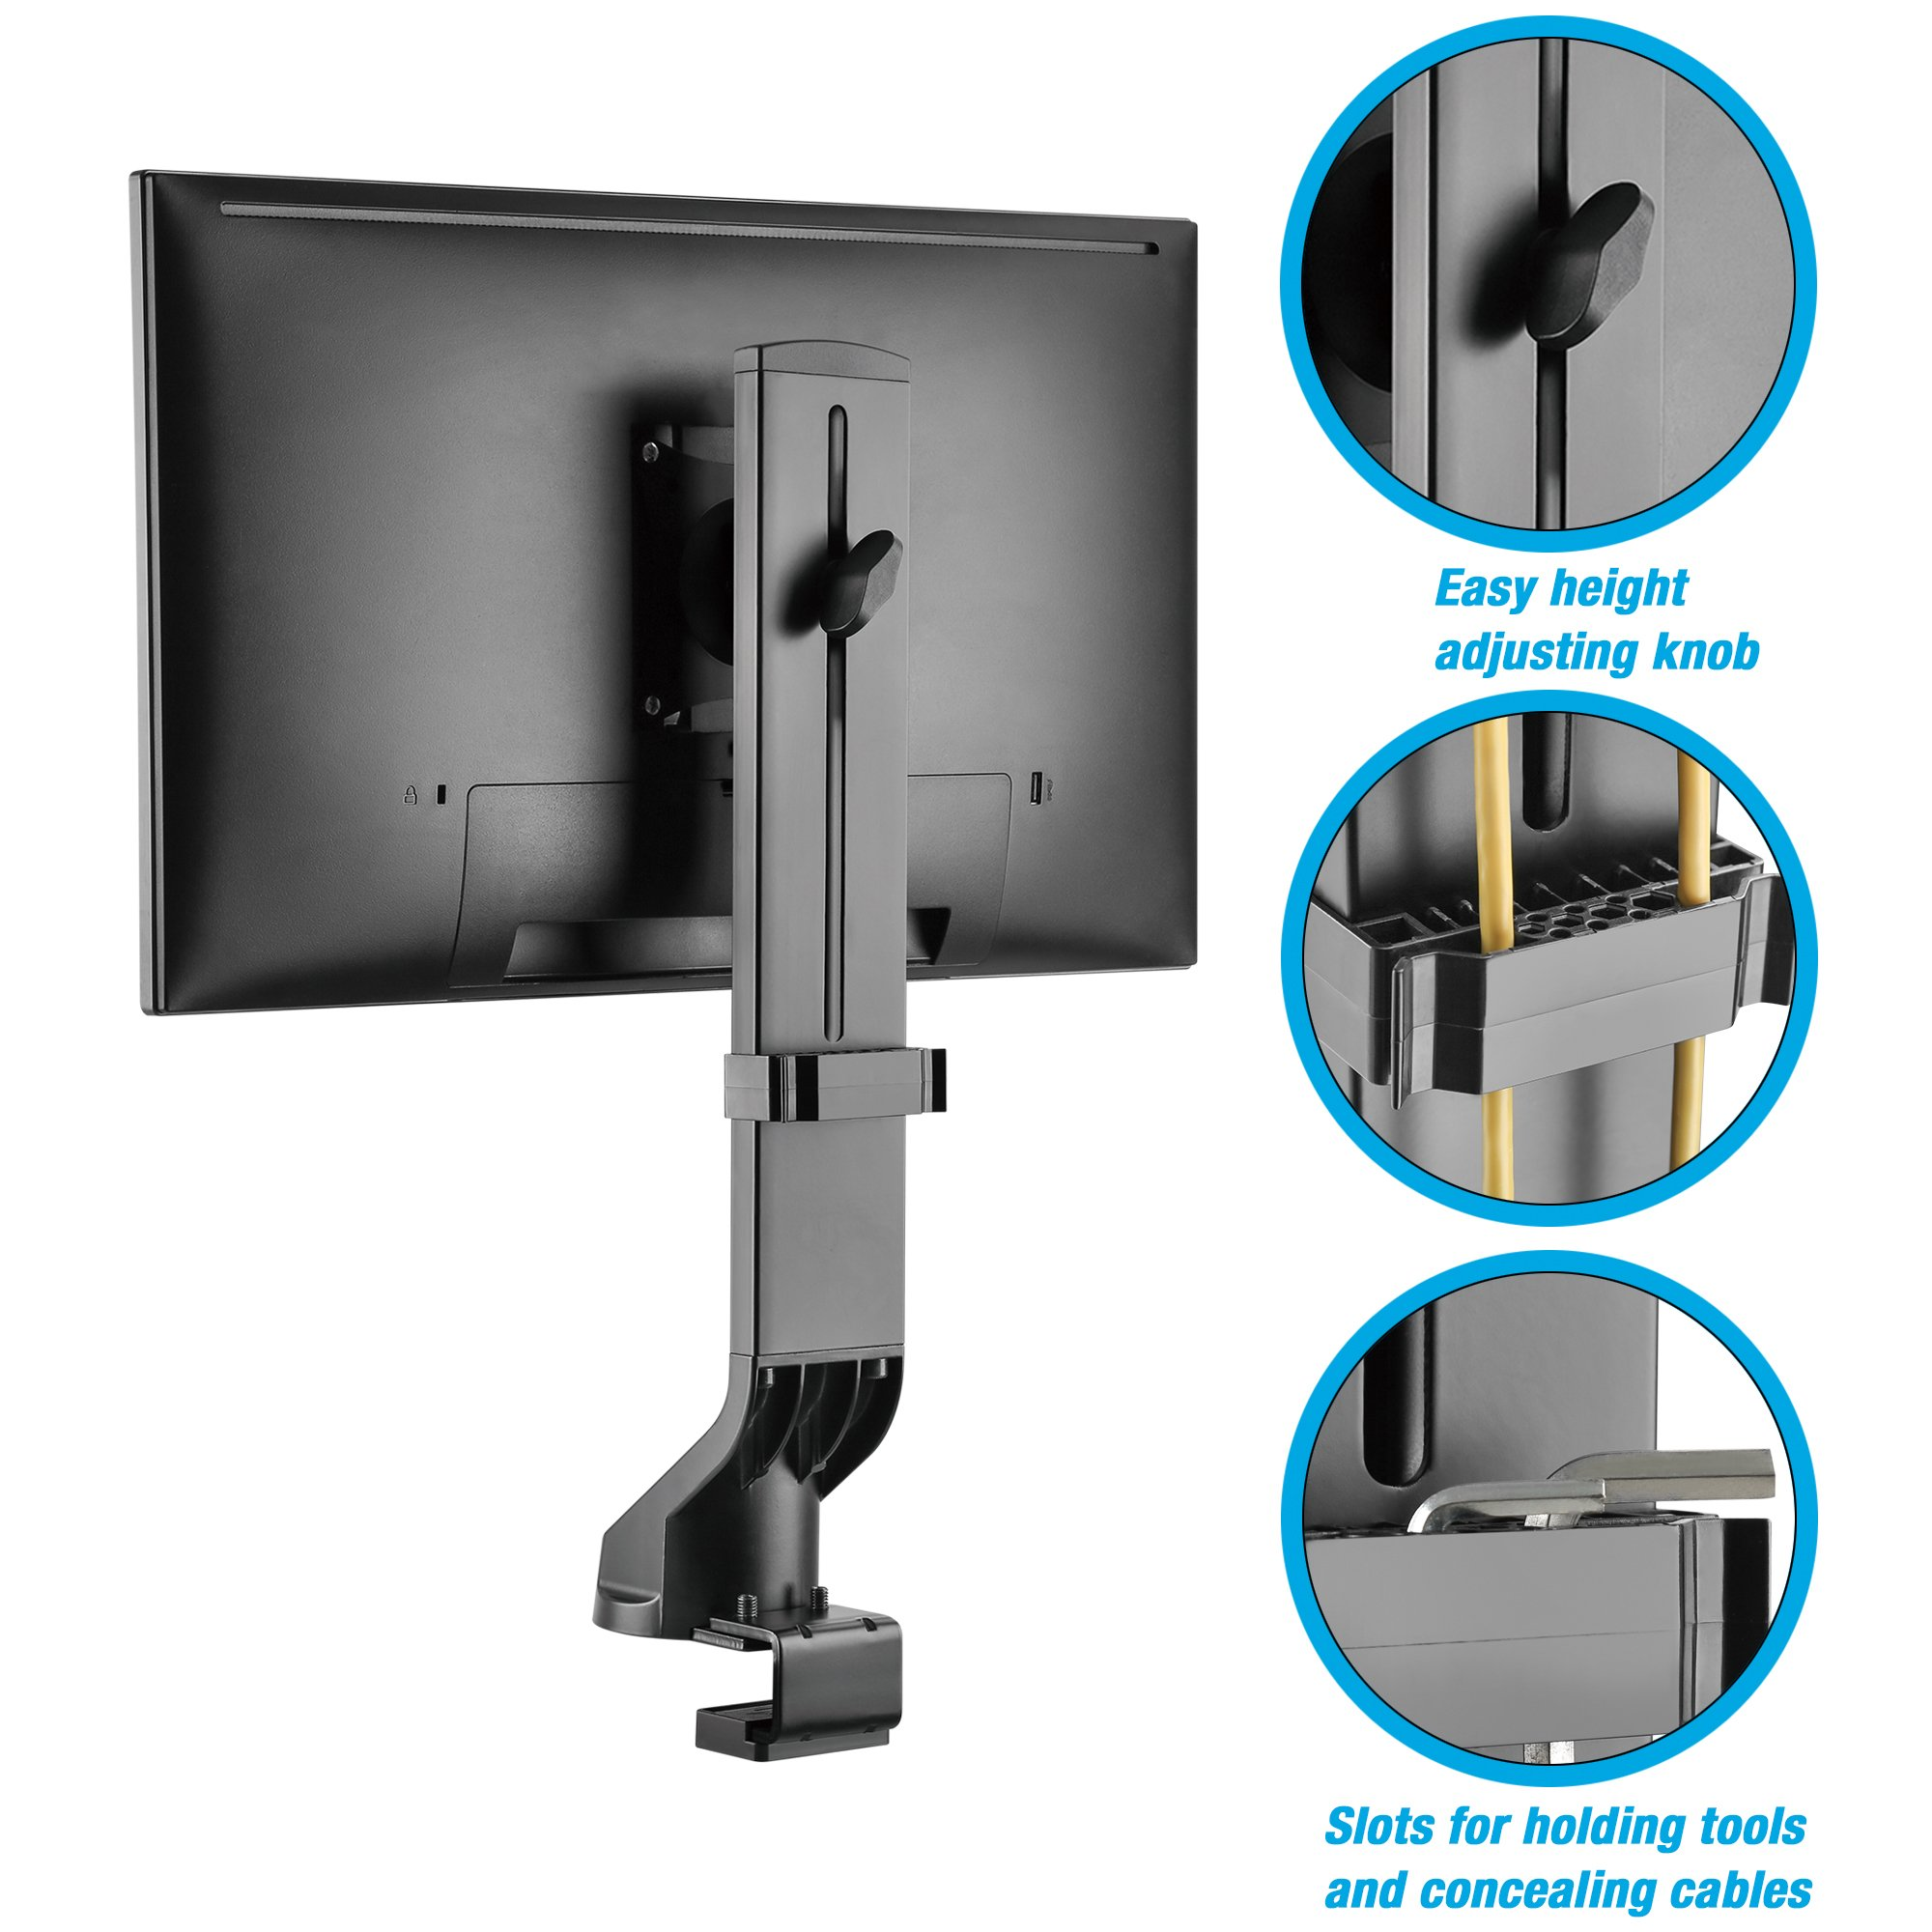 AVLT-Power Single Monitor Mount for Standing Desk Workstation - Extra Height Adjustment Range - Heavy Duty - Holds 17'' to 32'' Screens, up to 17.6 lbs, VESA 75x75mm 100x100mm by AVLT-Power (Image #4)